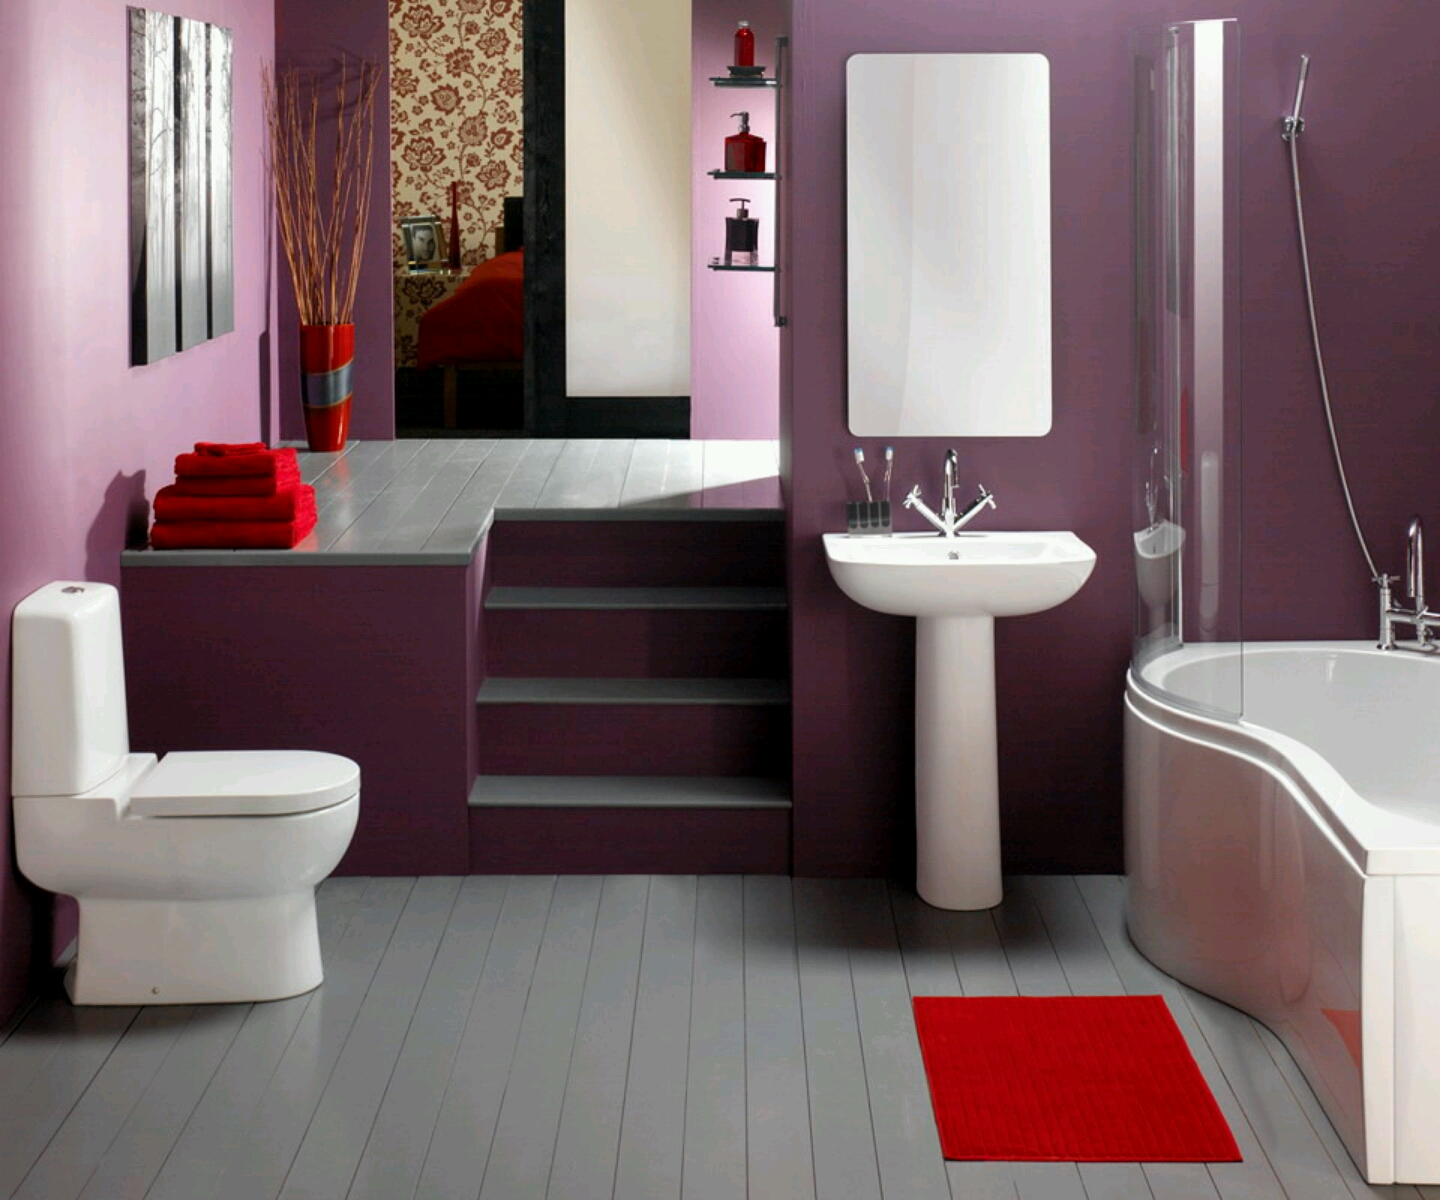 New home designs latest luxury modern bathrooms designs decoration ideas New design in bathroom